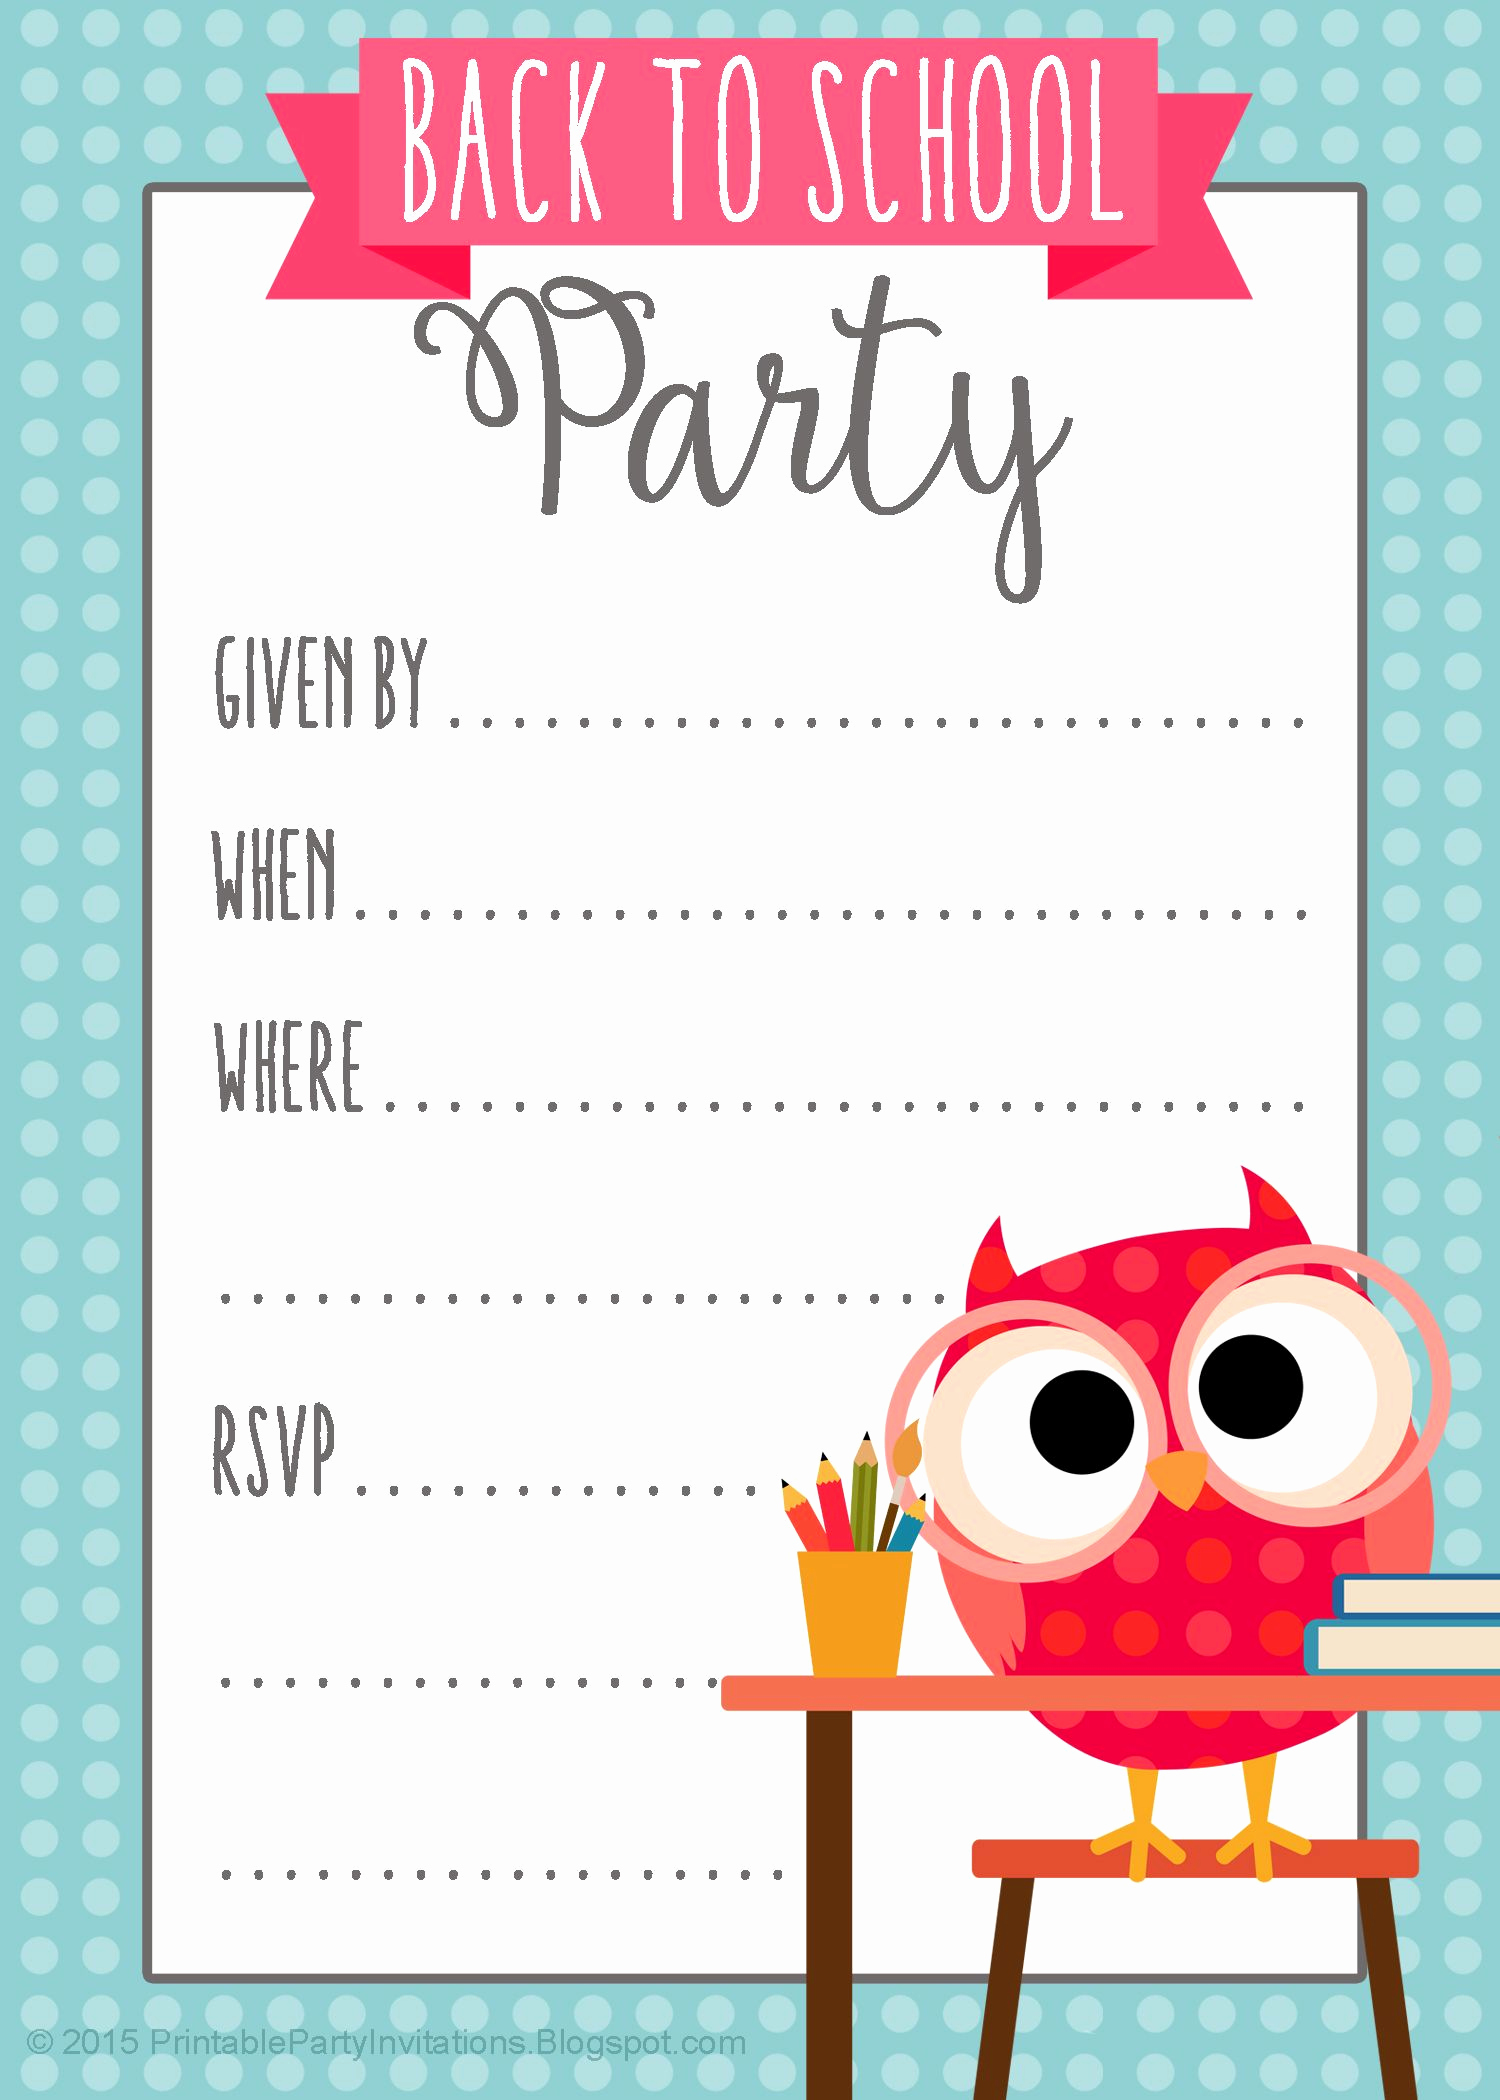 Potluck Invitation Template Free Printable New Free Printable Back to School Party Invitation